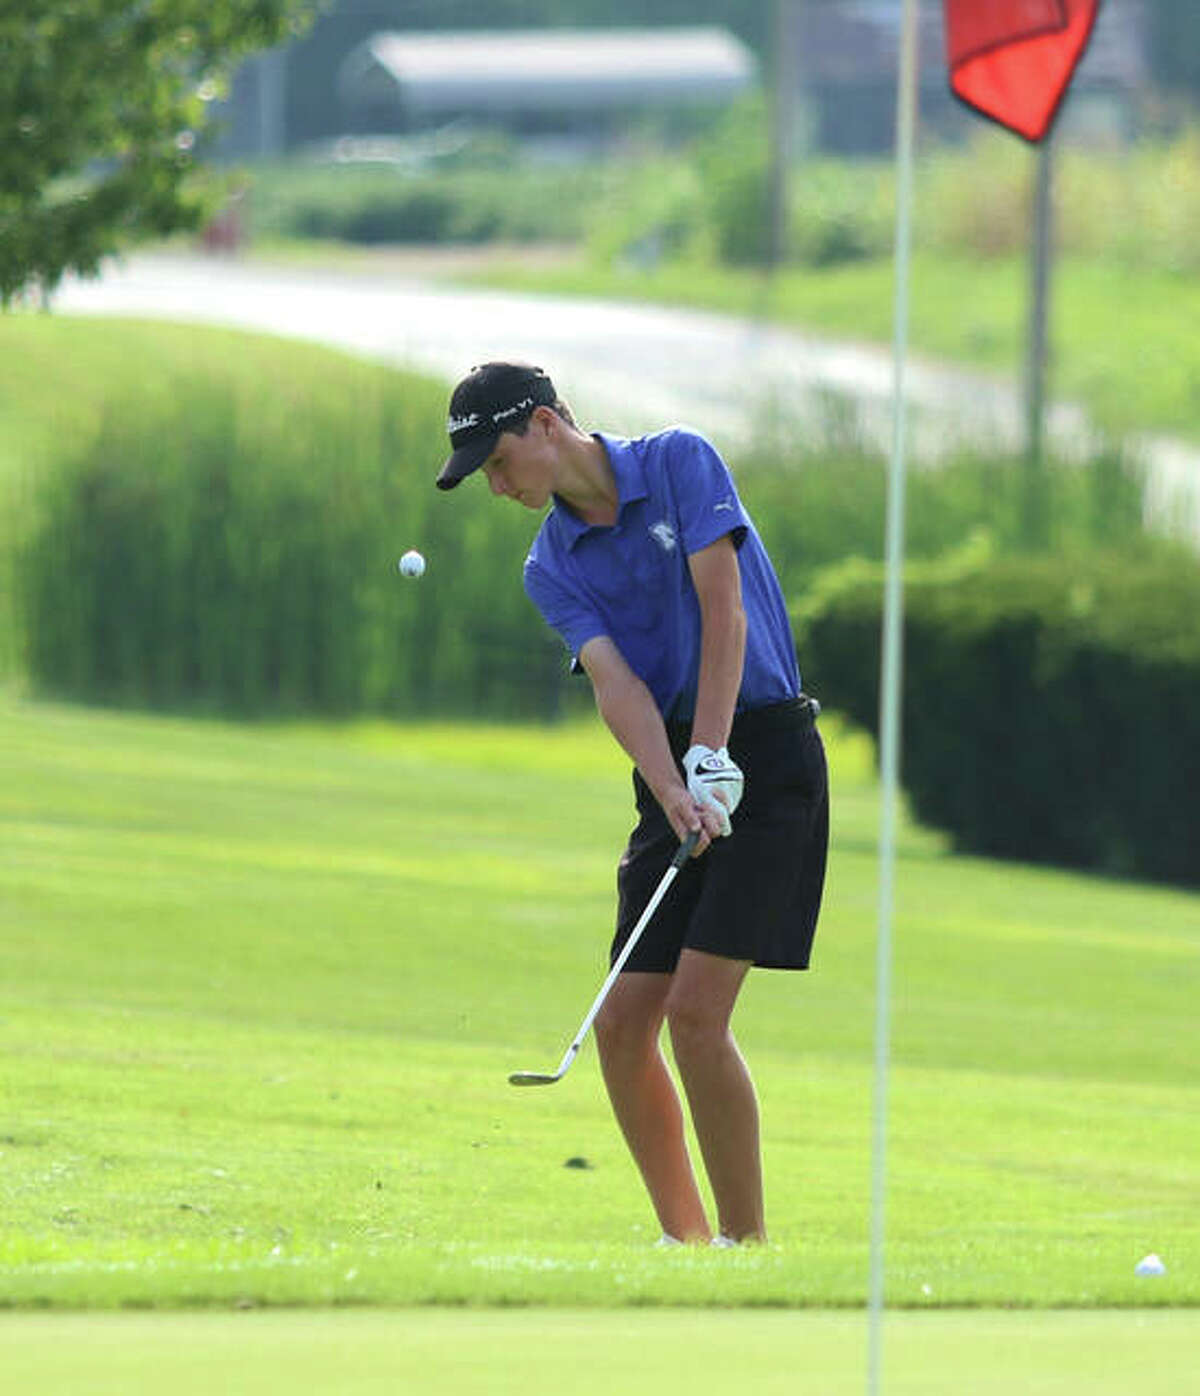 Marquette Catholic's Aidan O'Keefe chips onto the green on hole No. 2 at Belk Park in the Hickory Stick Tourney on Aug. 16 in Wood River. On Wednesday, O'Keefe's even-par 36 led the Explorers to a one-shot dual victory over Alton High.